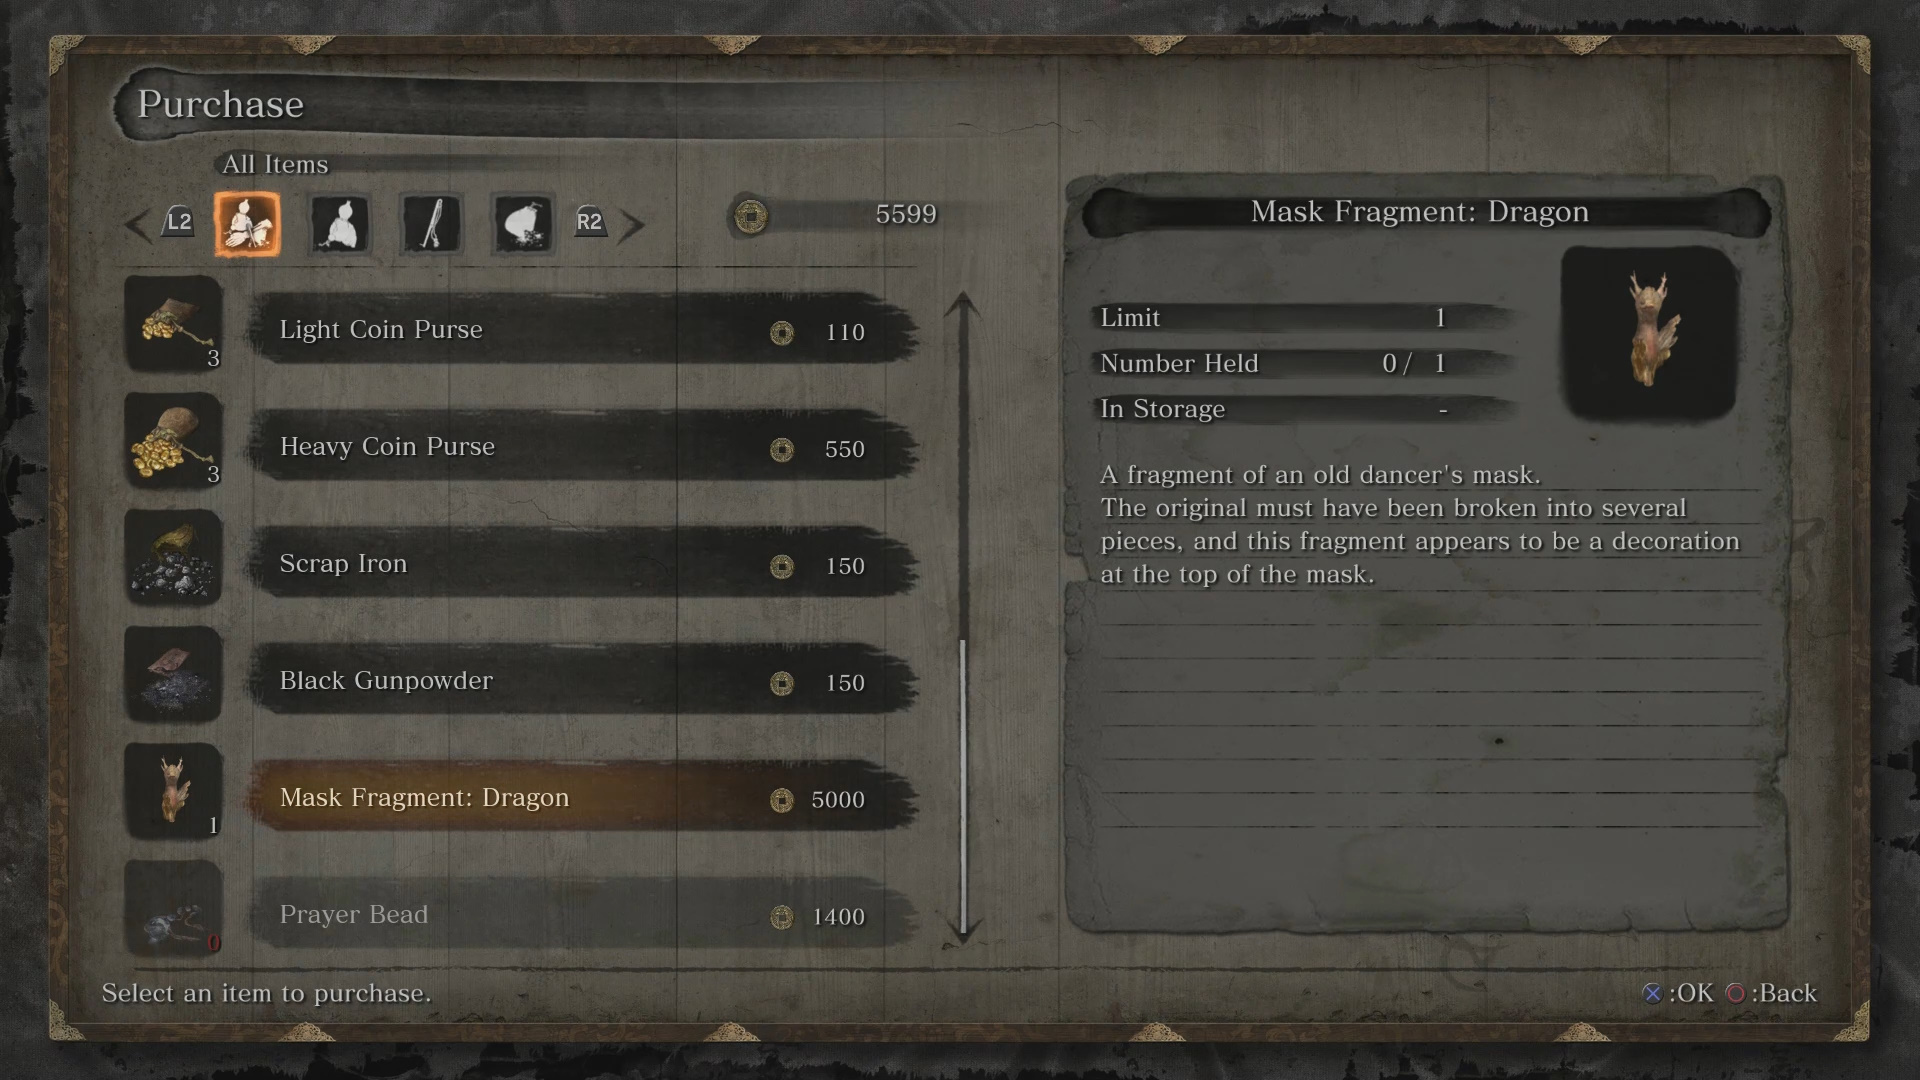 Purchase Mask Fragment Dragon from Dungeon Memorial Mob (5000 sen)